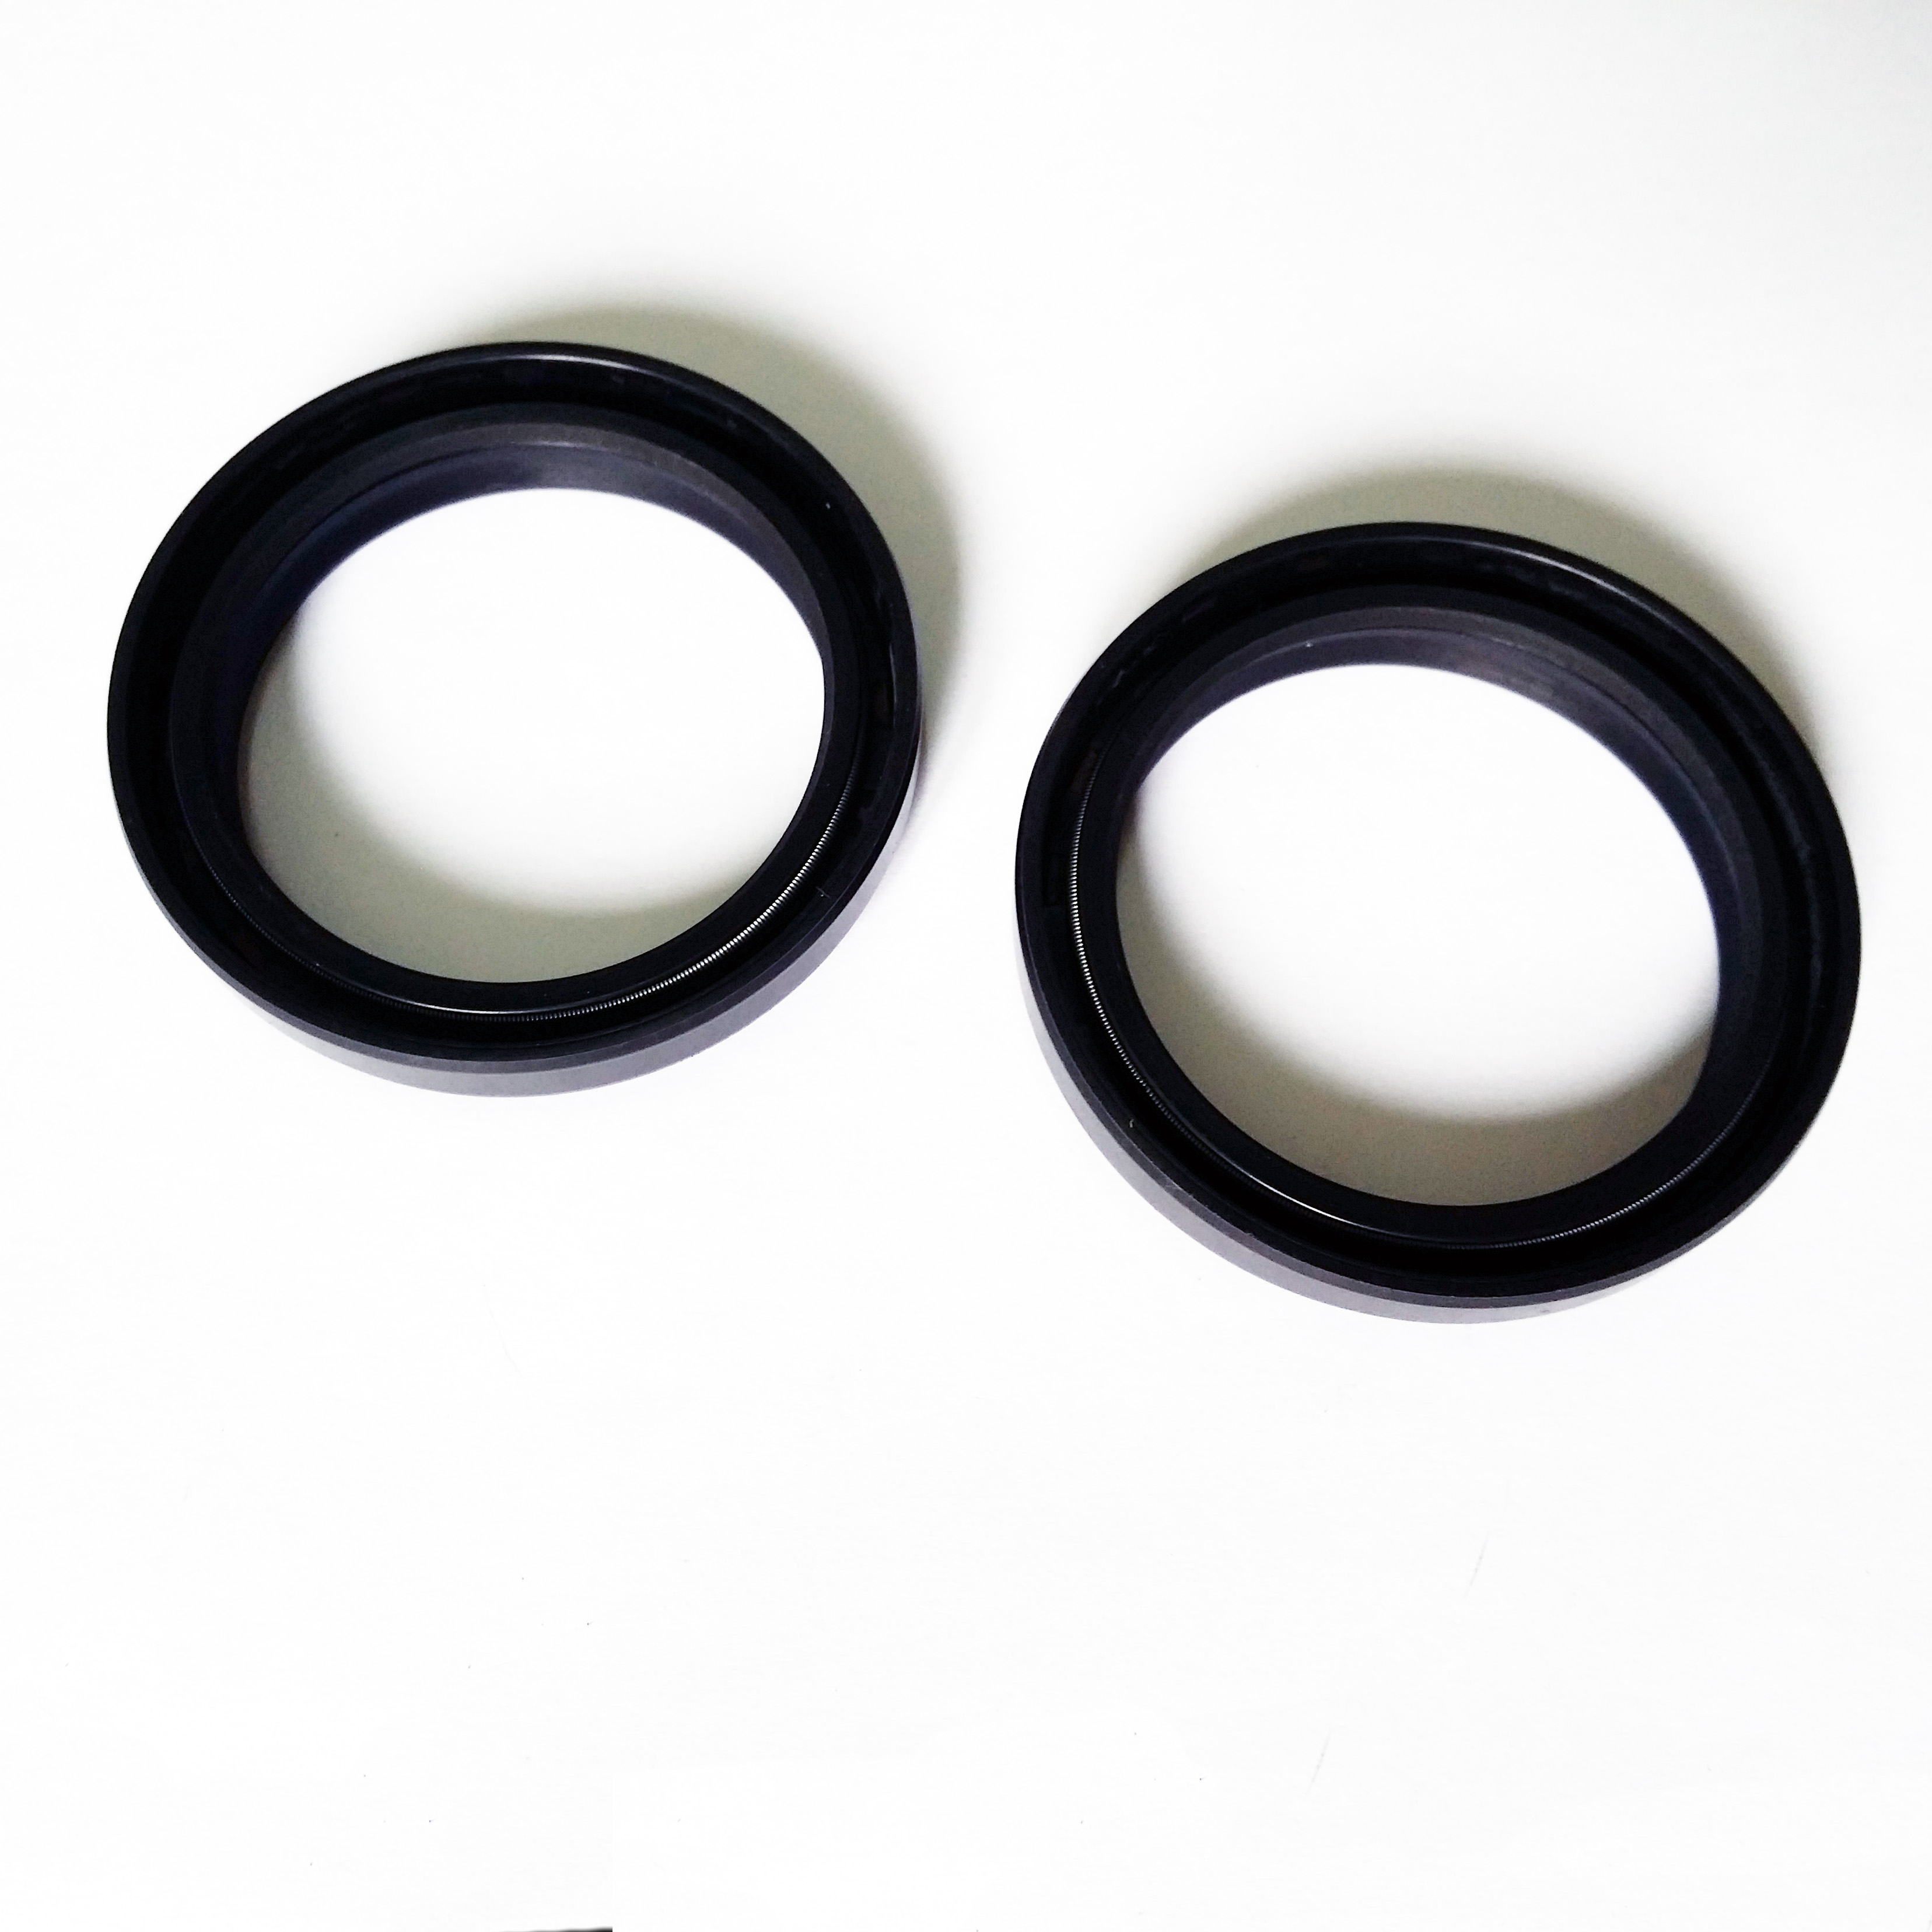 K-Tech Honda CR125 1997-2007 NOK Front Fork Oil Seals